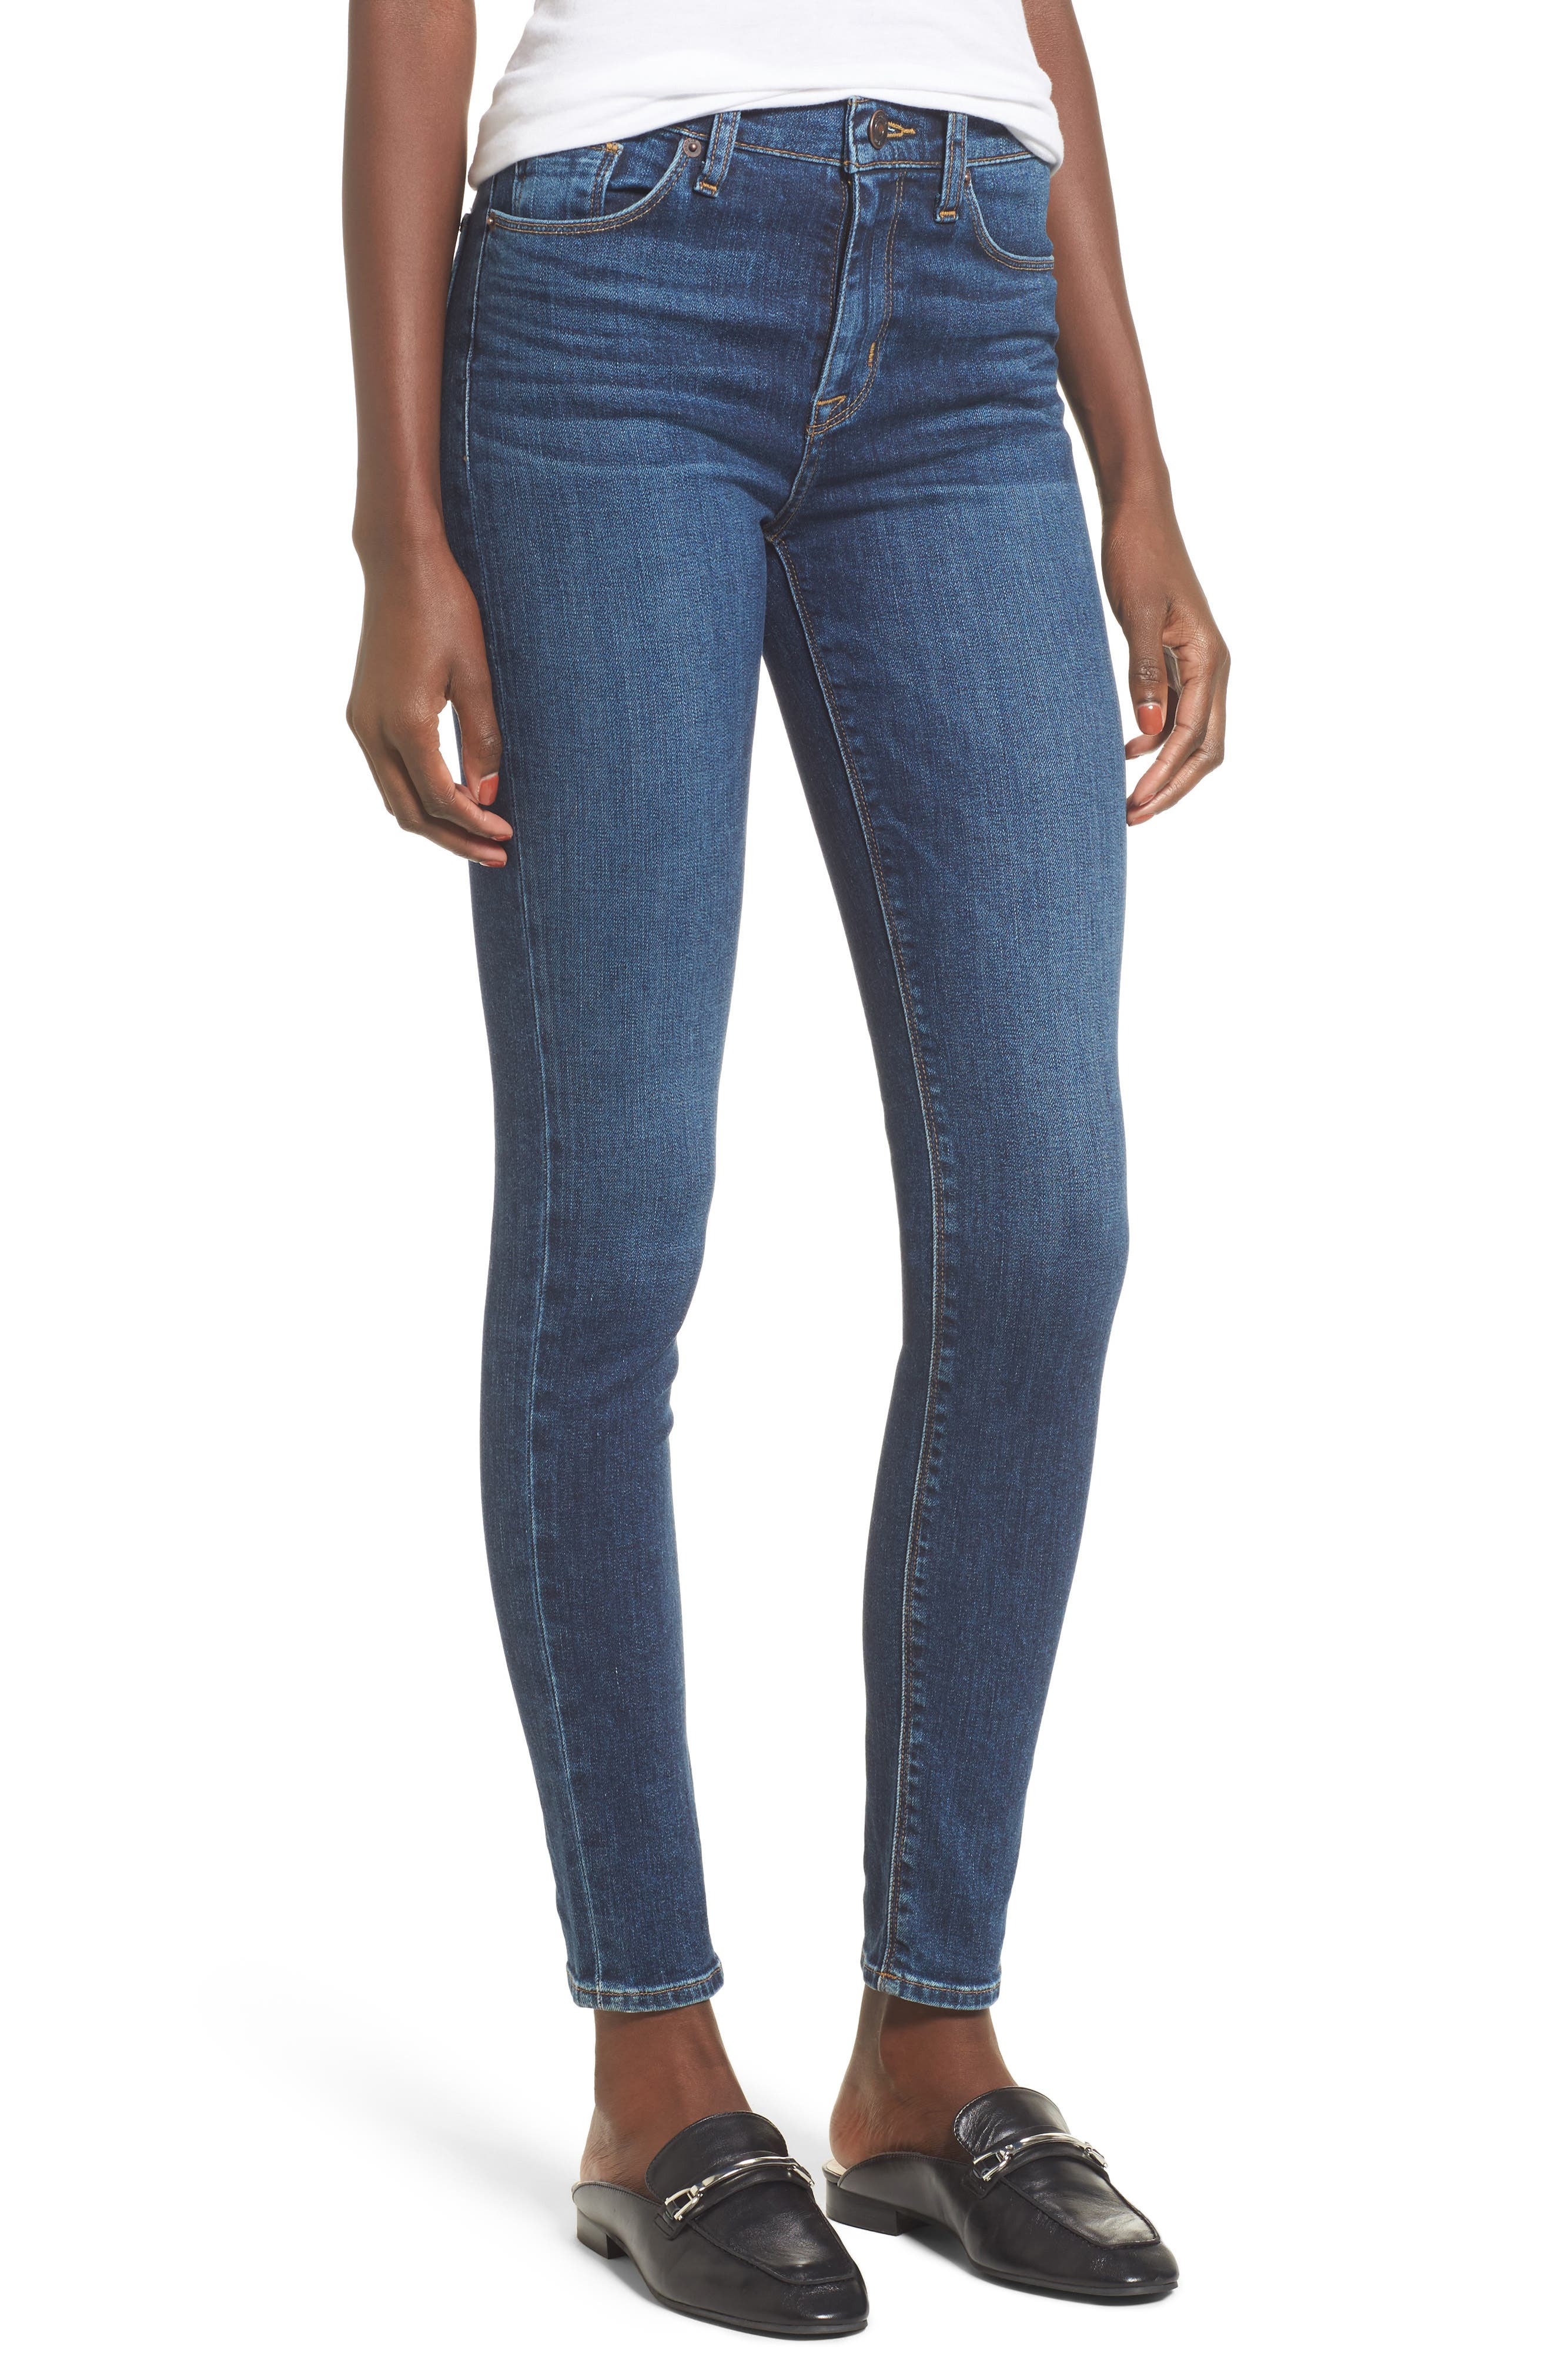 Barbara High Waist Super Skinny Jeans,                         Main,                         color, Realism